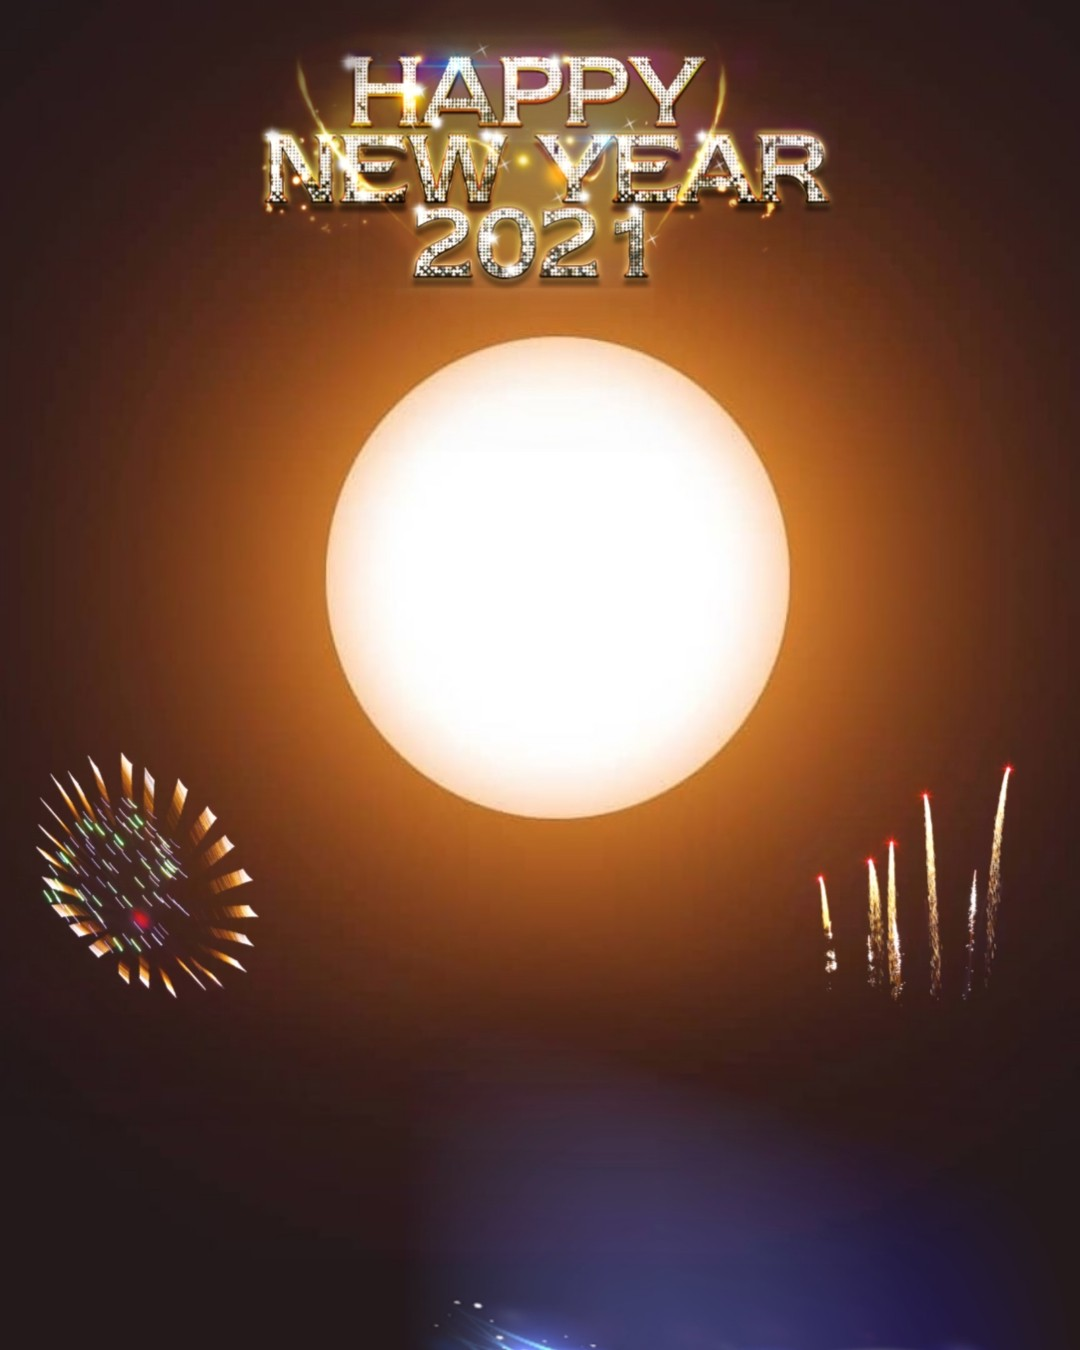 Cb Editing Happy New Year Background 2021 Download Are you looking for new year 2021 design images templates psd or png vectors files? cb editing happy new year background